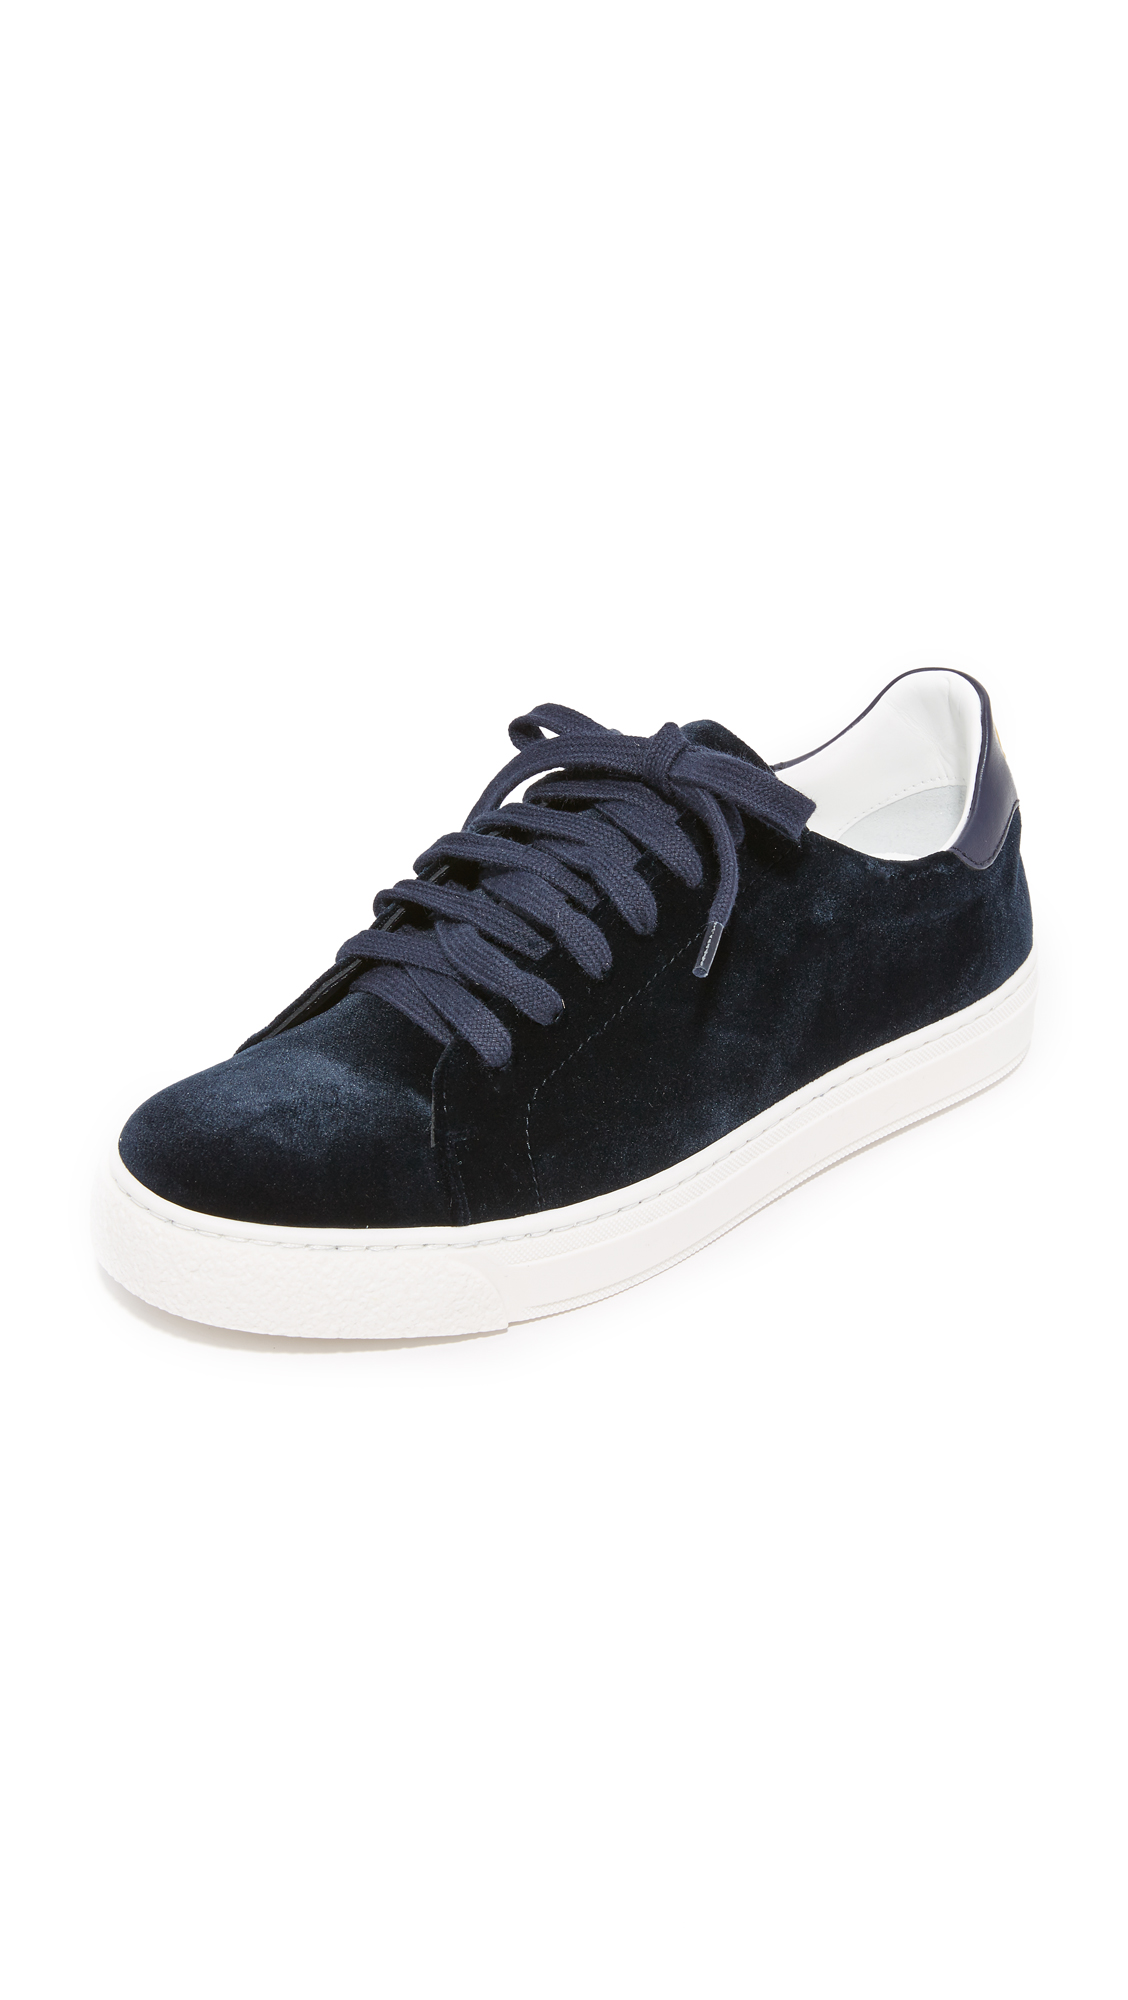 Anya Hindmarch Tennis Shoe Wink Sneakers - Indigo at Shopbop